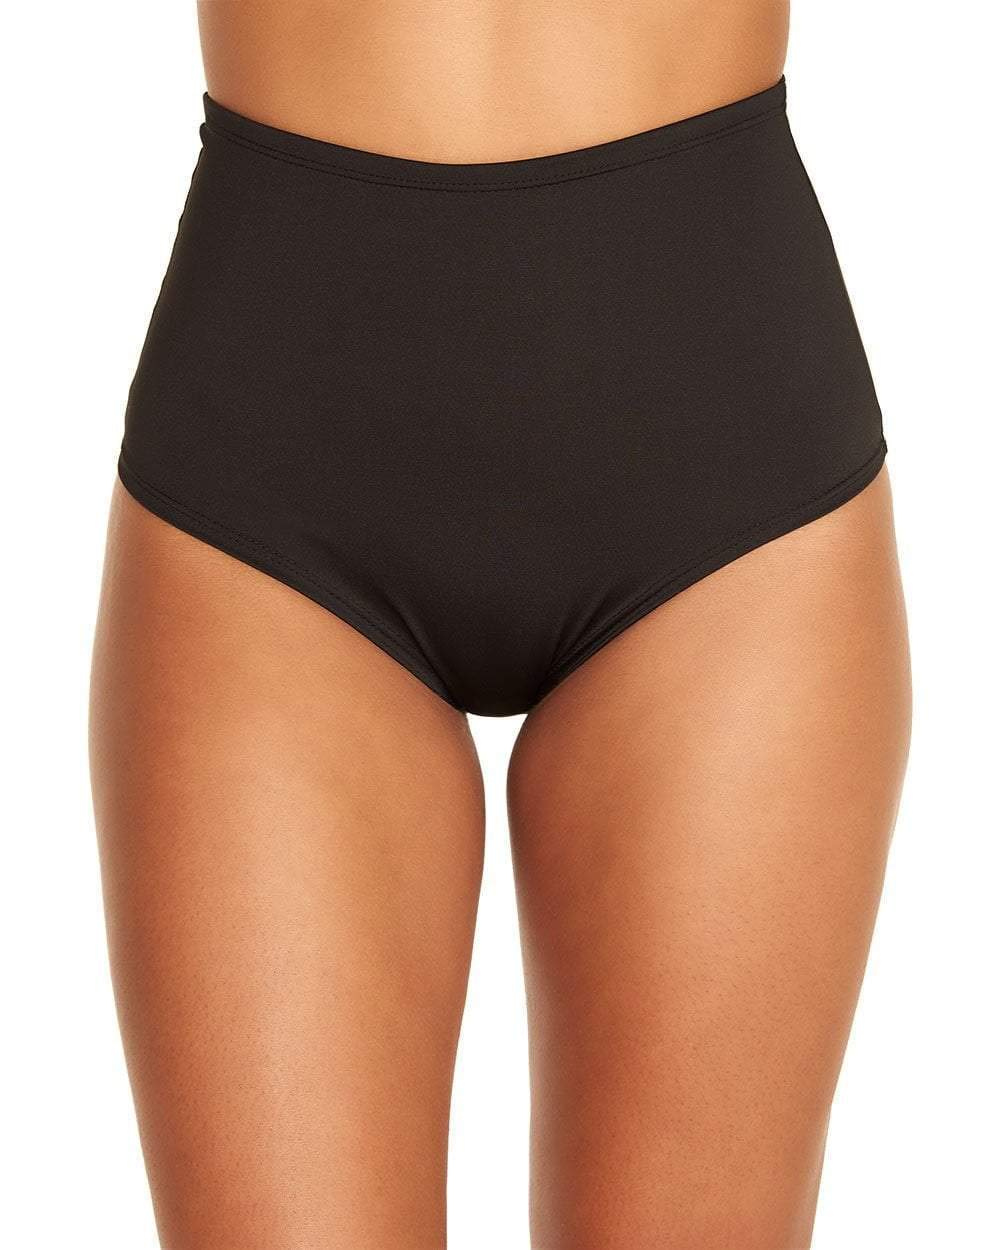 iHeartRaves Black Electro 2.0 High Waisted Booty Shorts (Small/Medium)